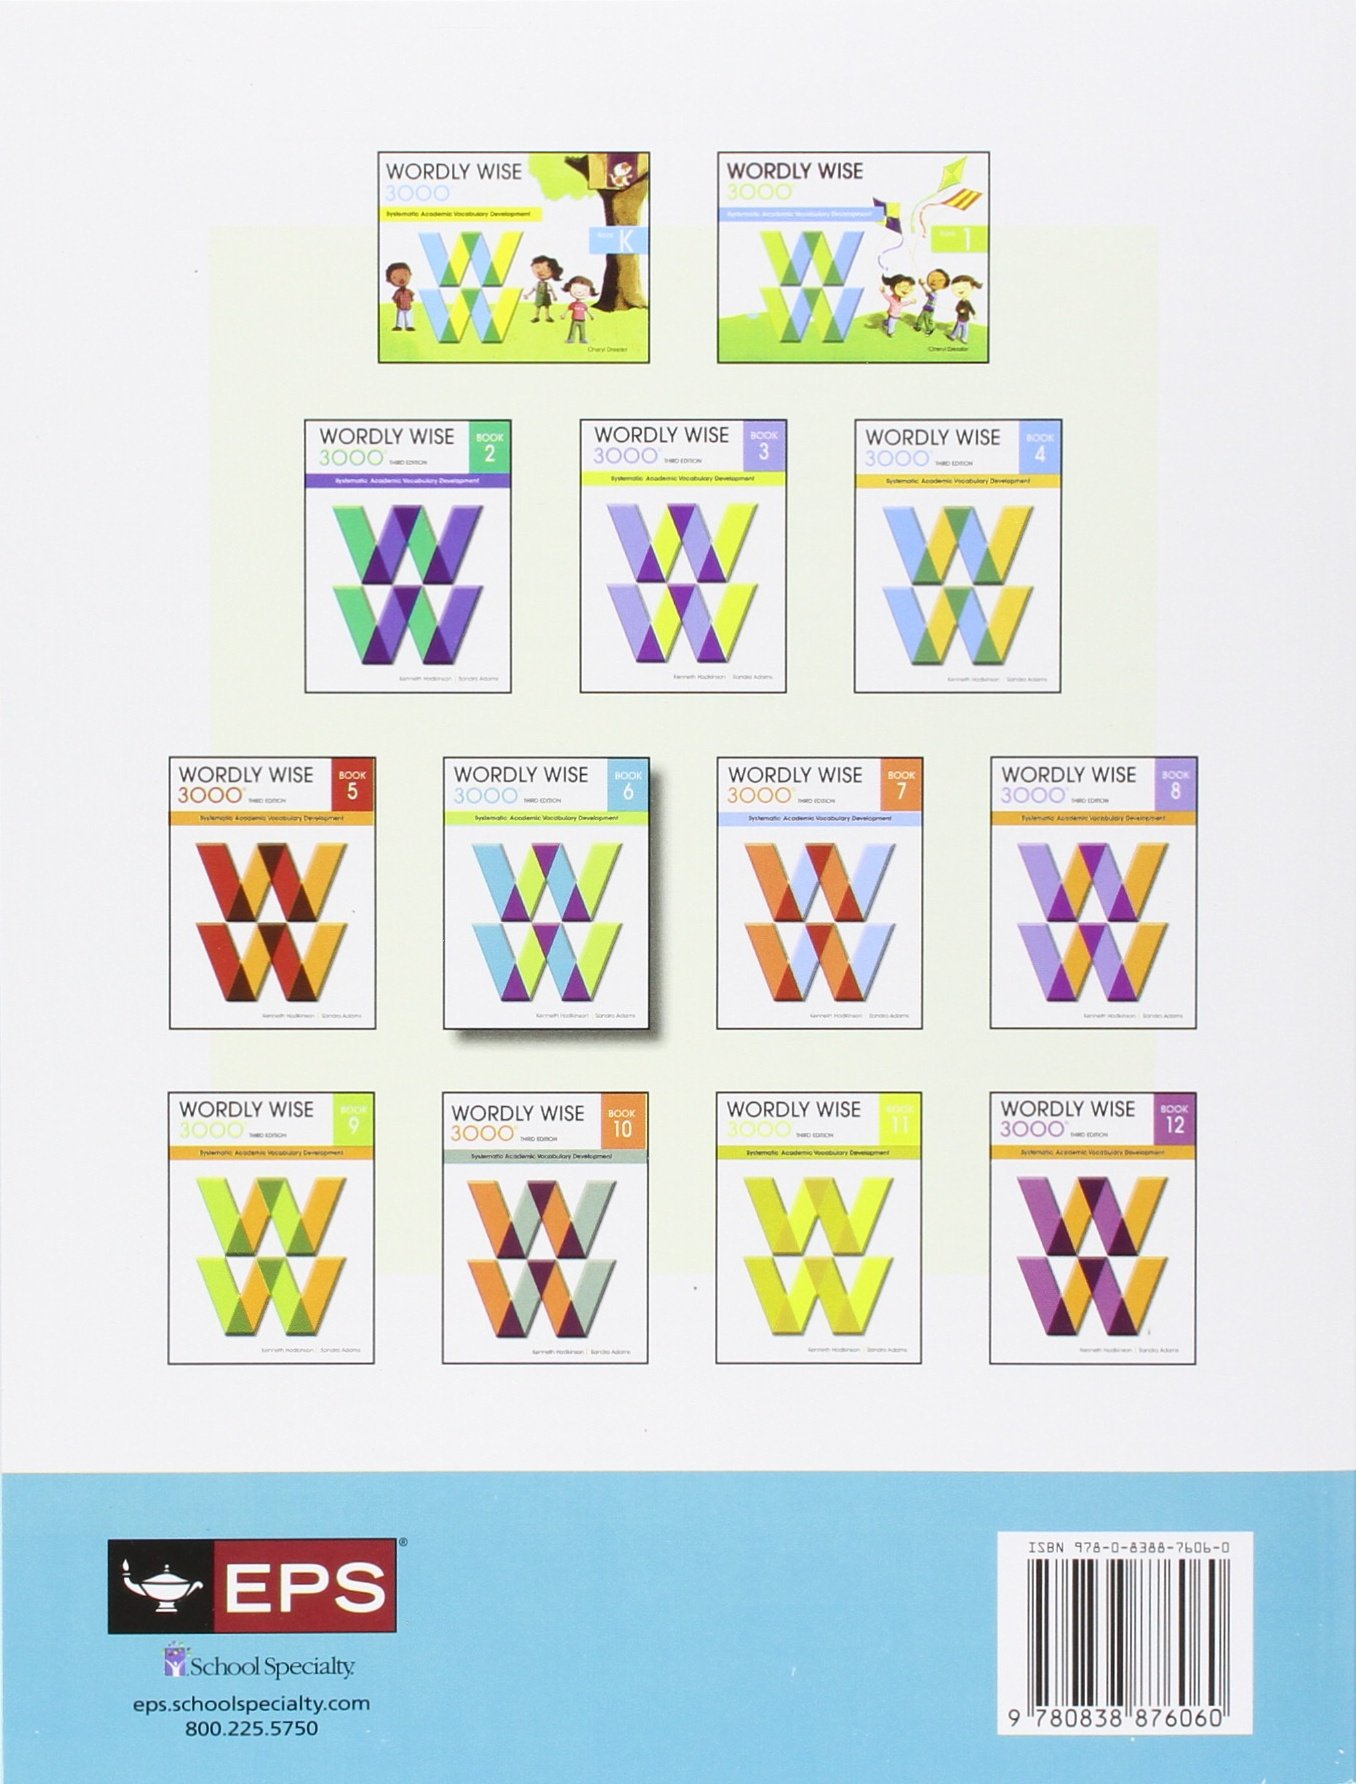 Wordly wise 3000 grade 6 set student answer key and tests wordly wise 3000 grade 6 set student answer key and tests systematic academic vocabulary development amazon books fandeluxe Image collections